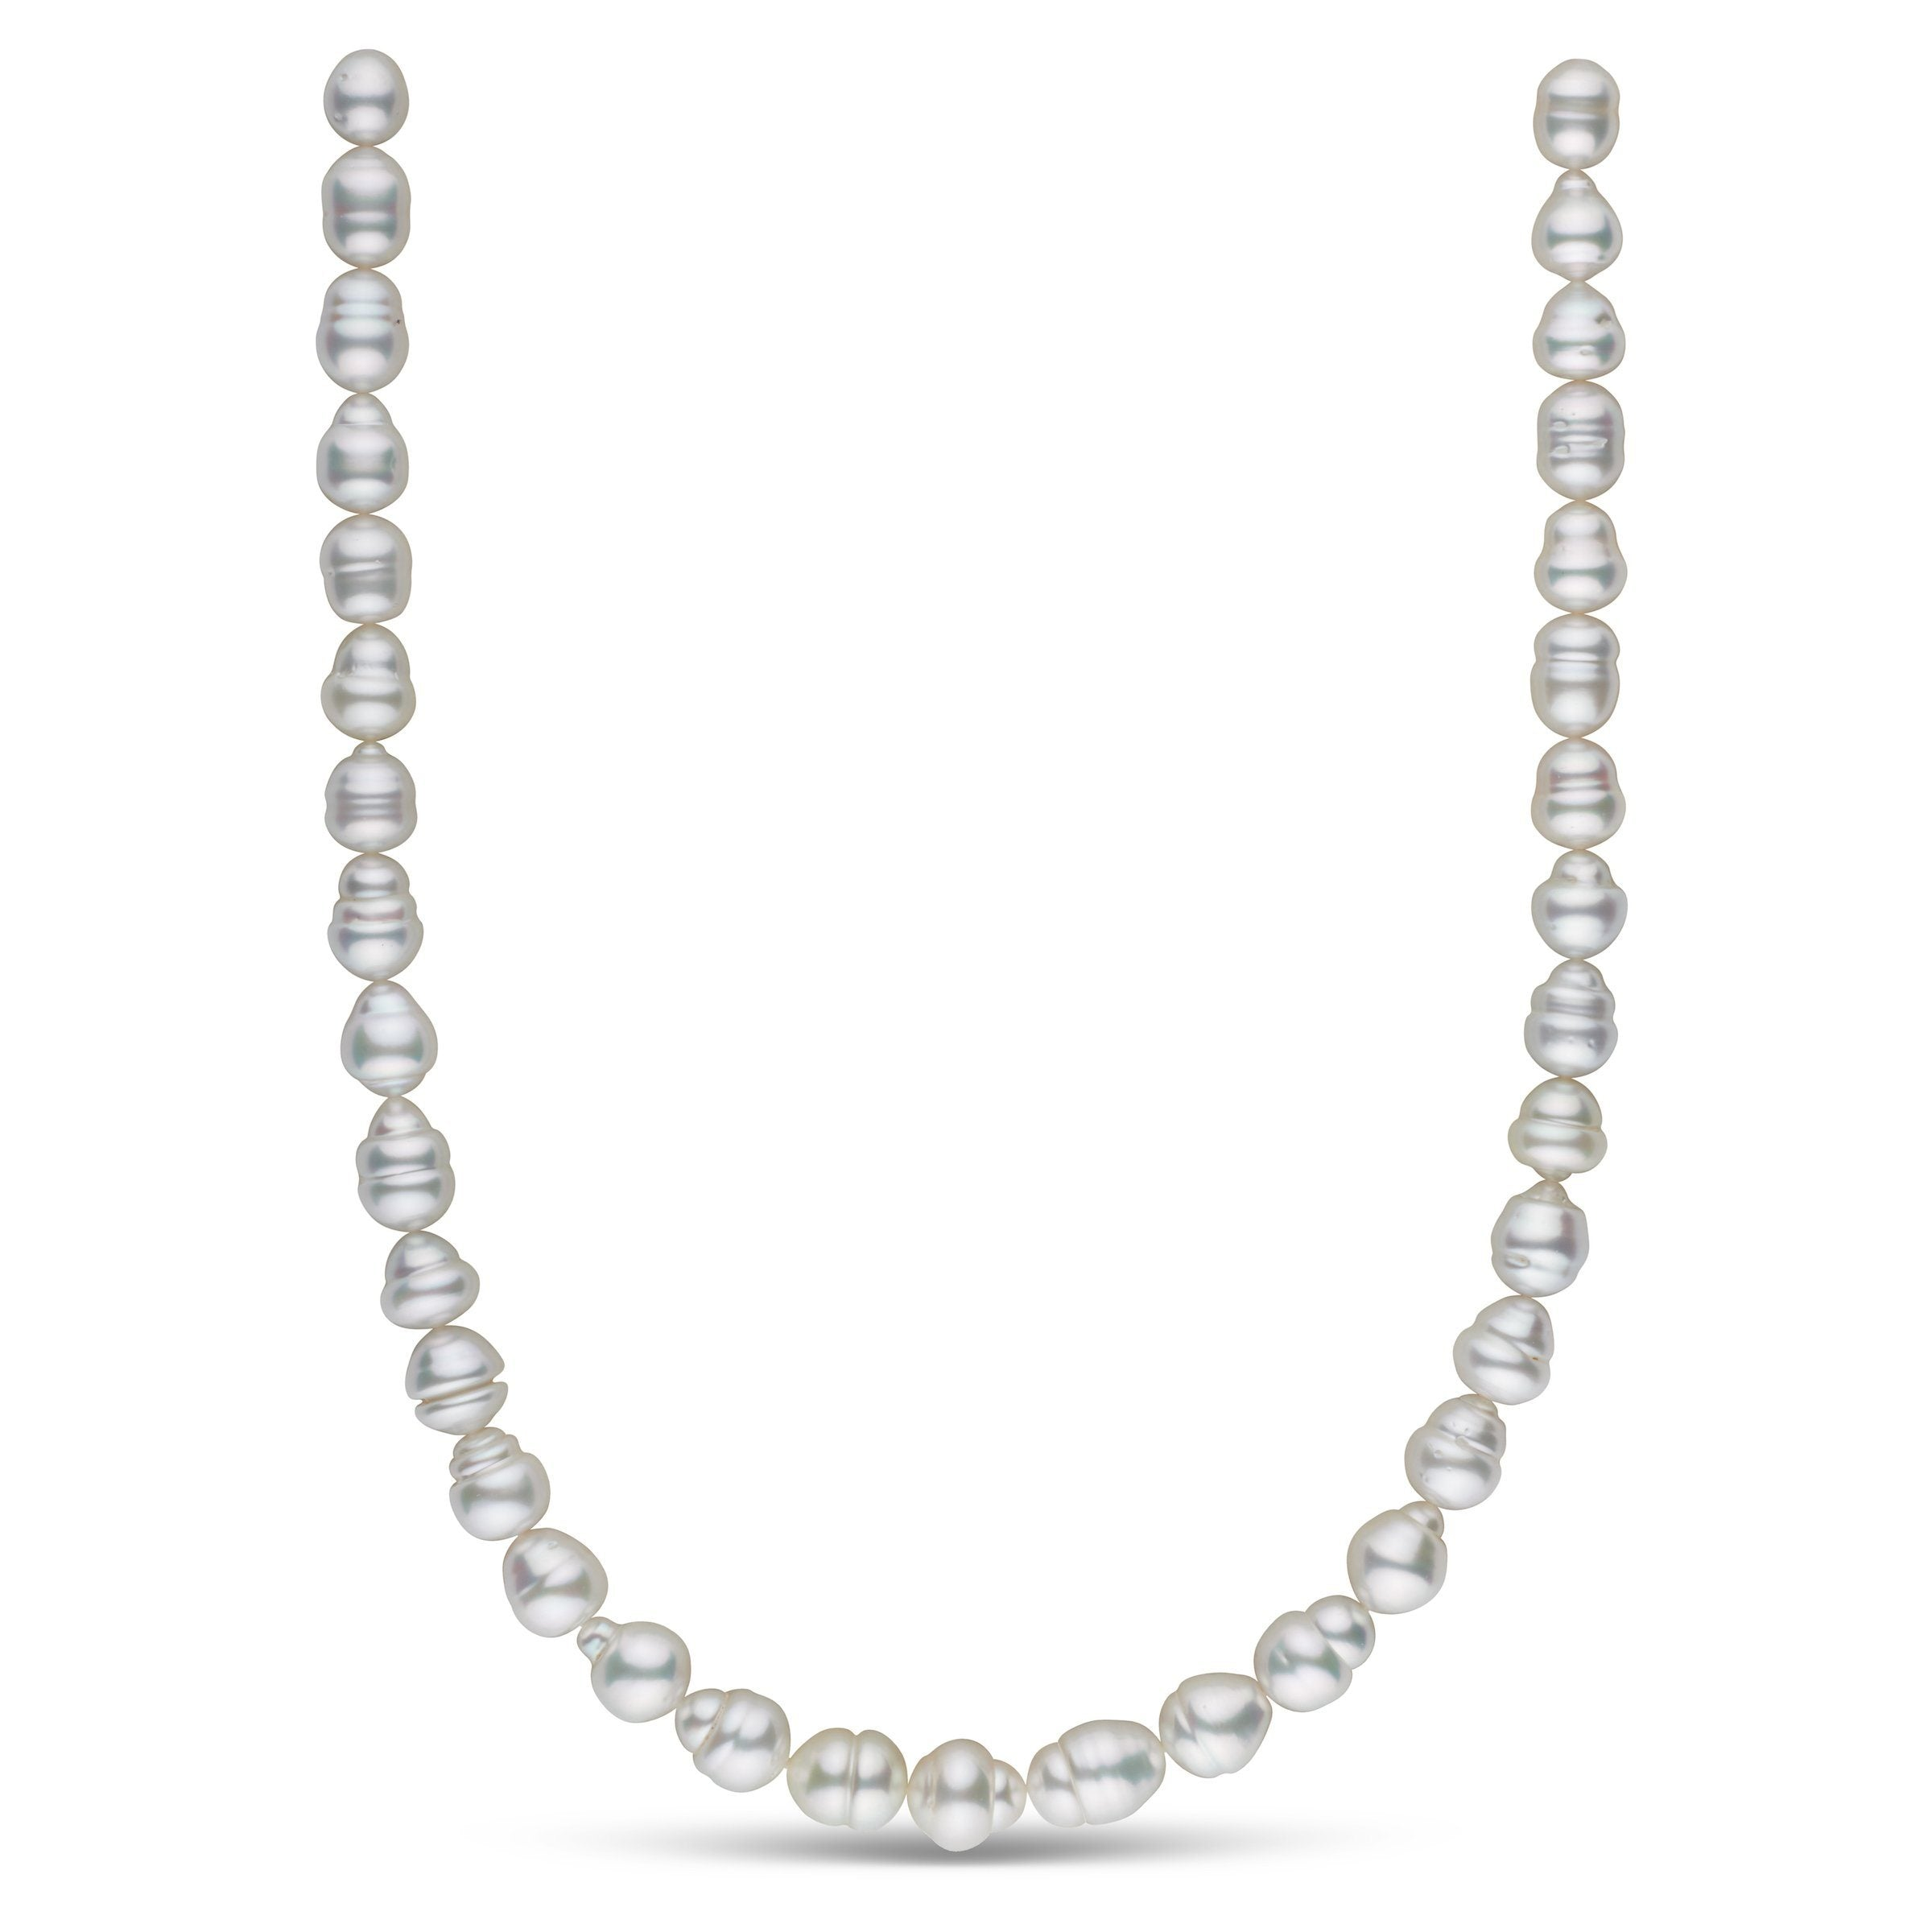 8.5-11.2 mm AA+/AAA White South Sea Baroque Necklace